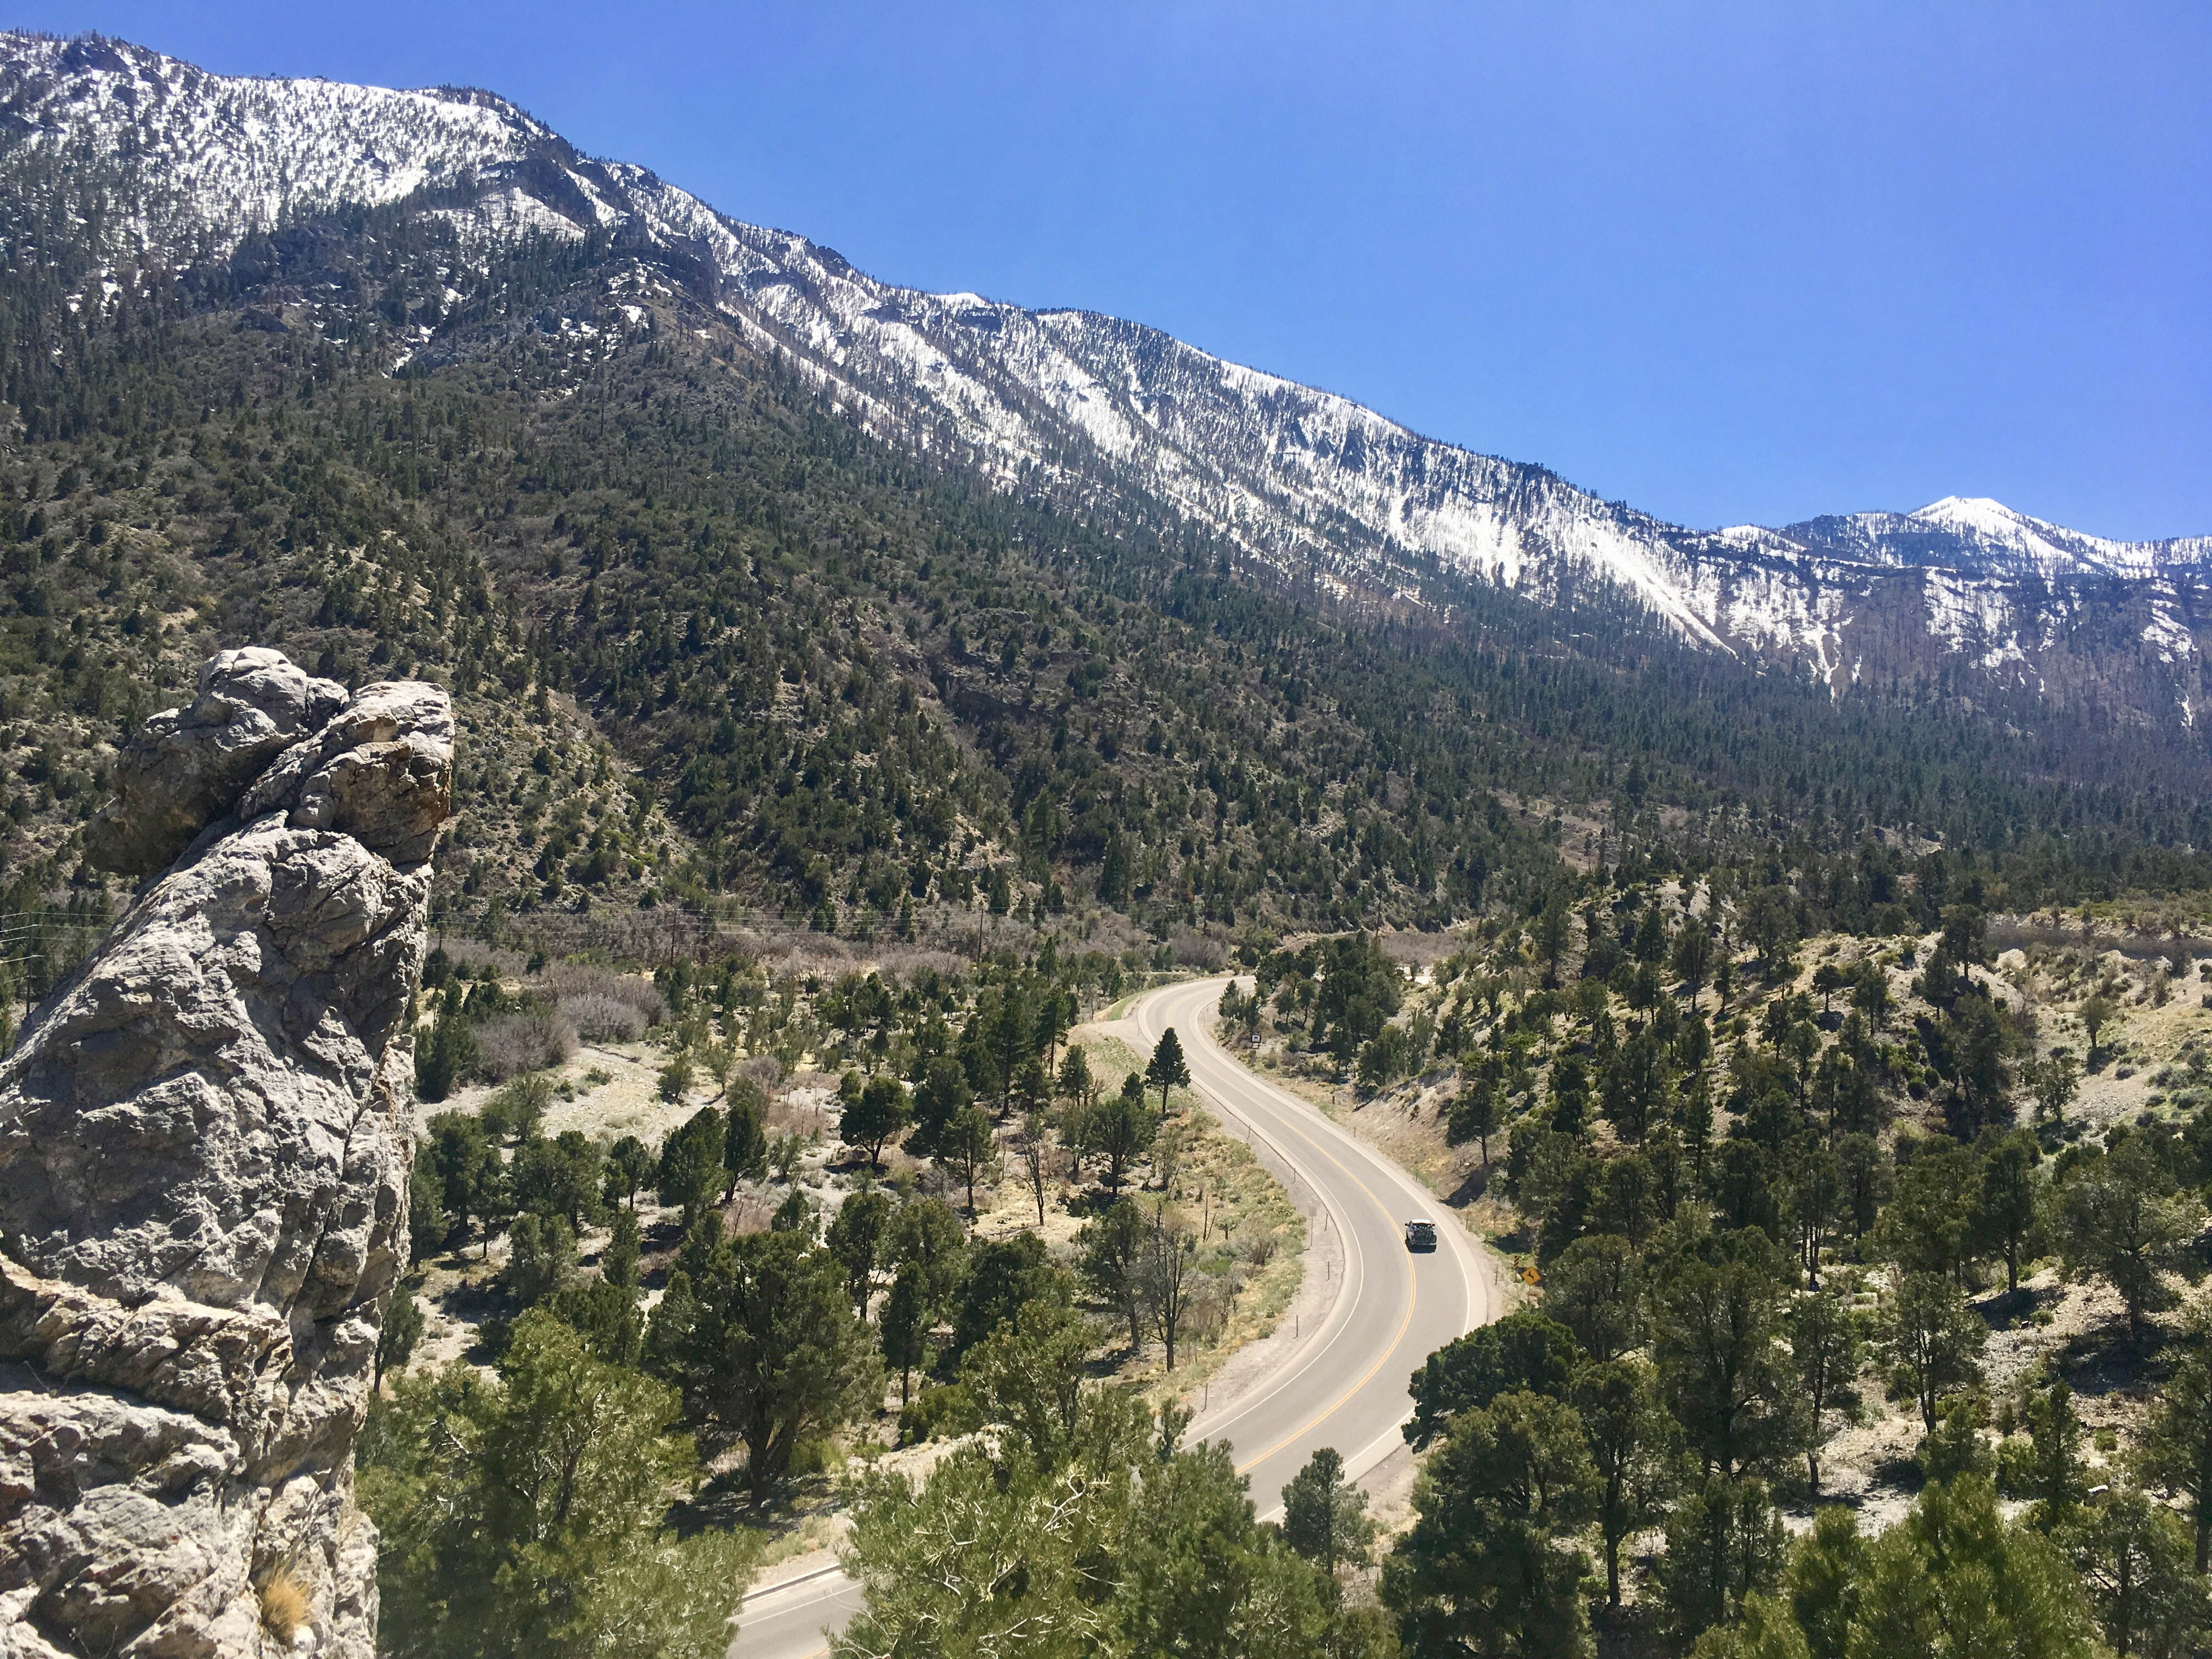 road winding into Kyle canyon